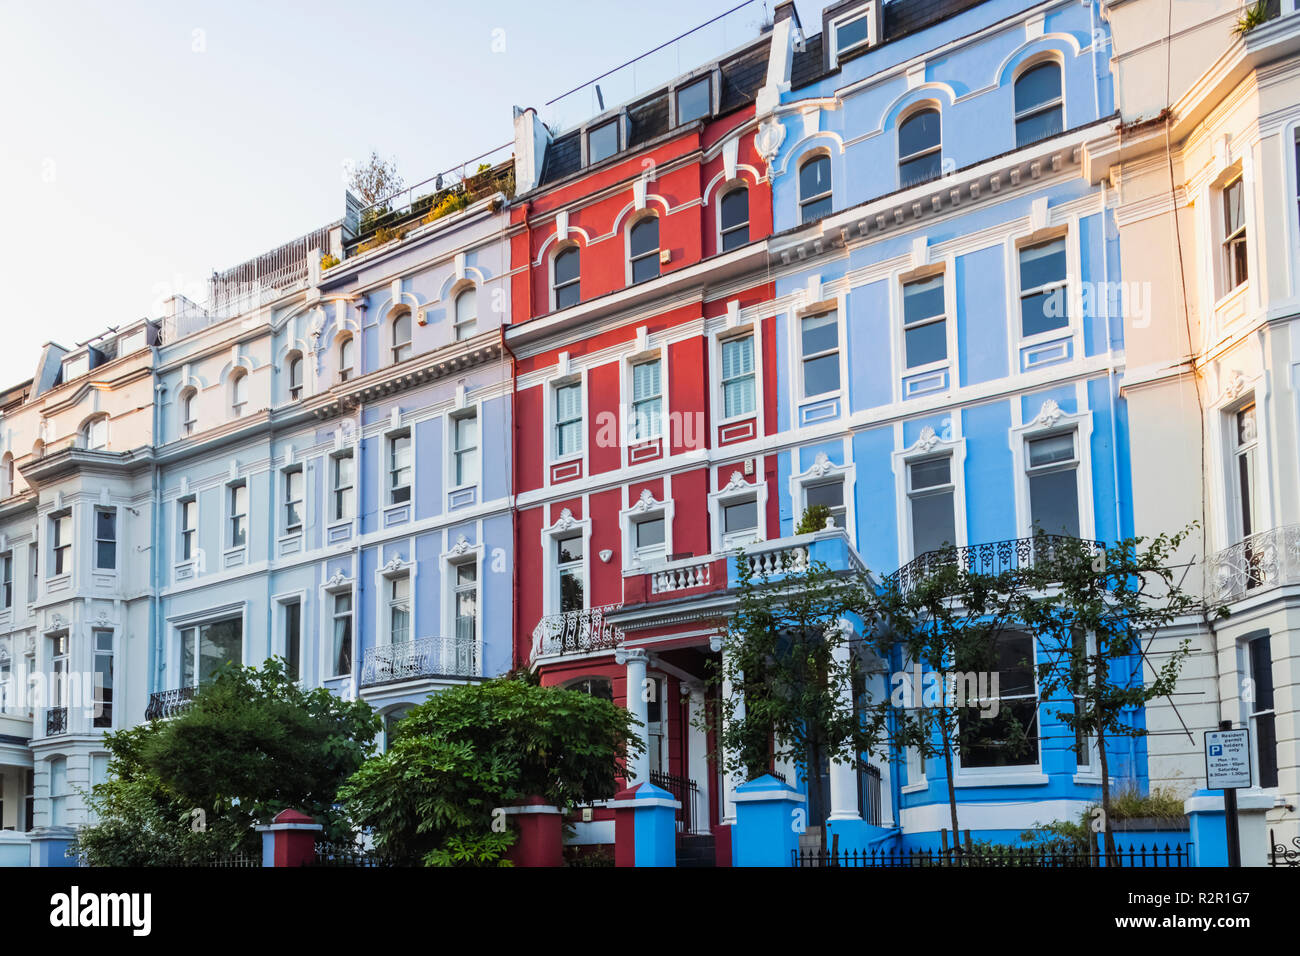 England, London, Notting Hill, Colville Terrace, Colourful Houses - Stock Image